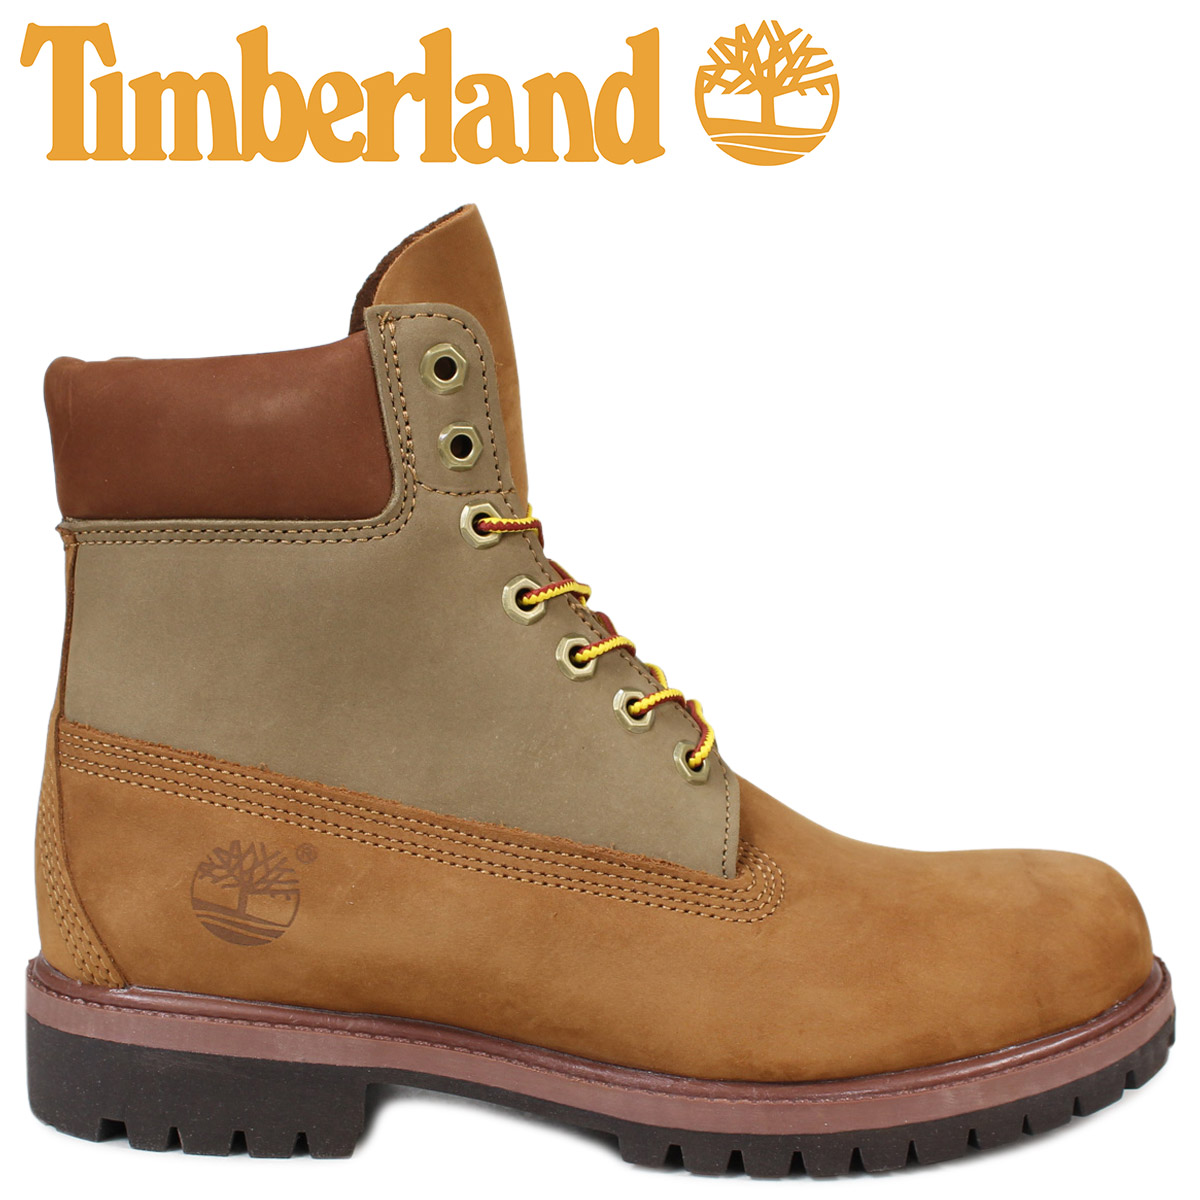 ab0a06ff954 6 inches of Timberland boots men Timberland 6INCH PREMIUM BOOT 9654B  premium W Wise waterproofing brown